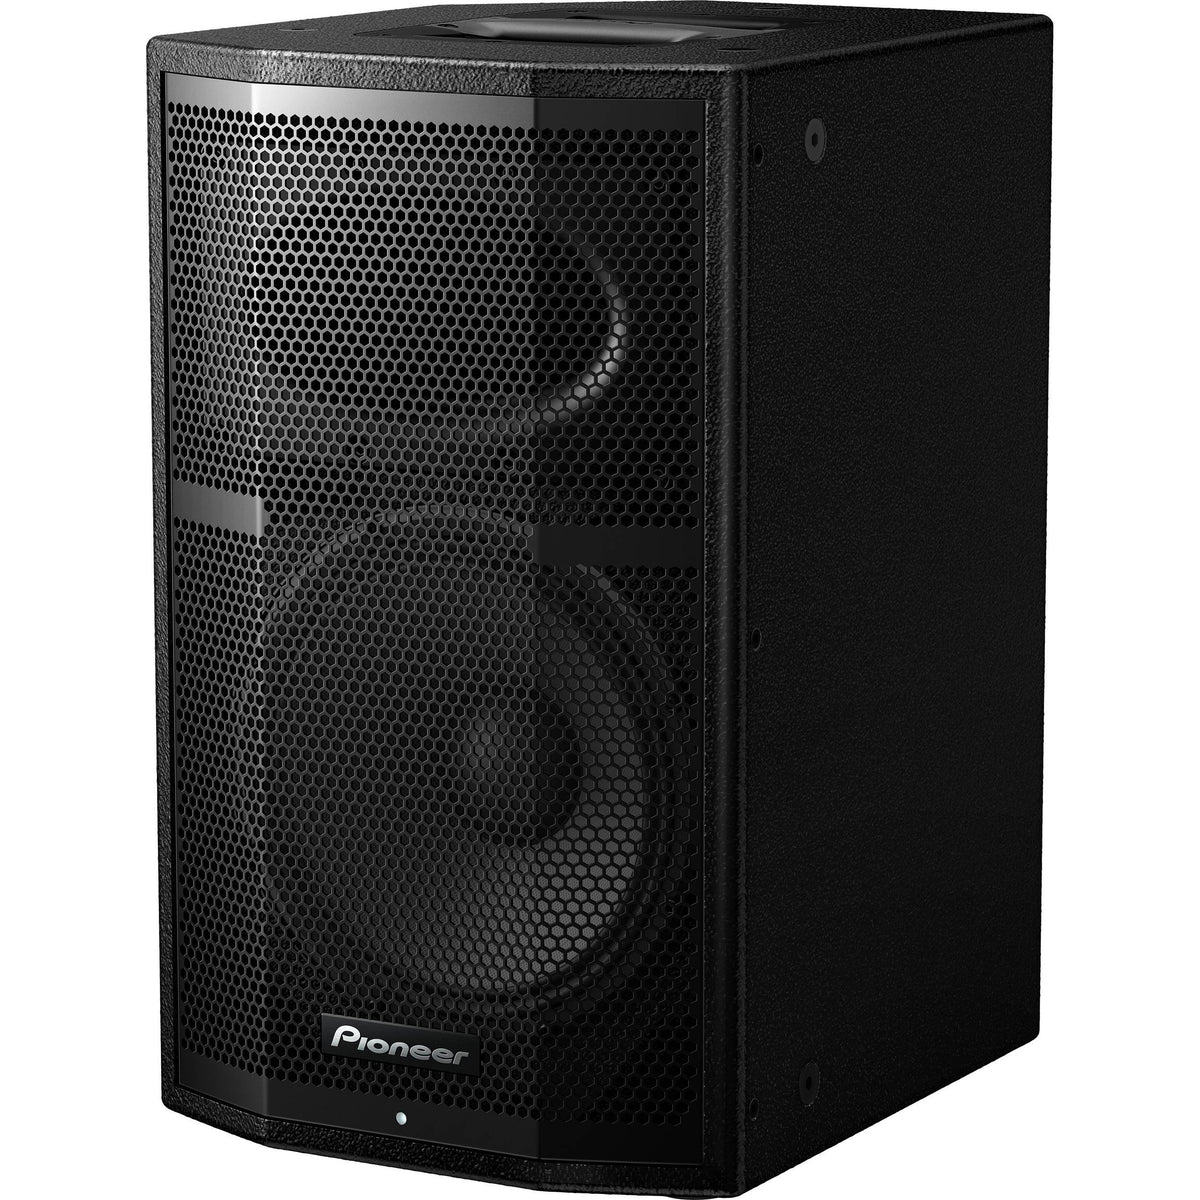 "Pioneer XPRS 12 12"" Two-Way Full-Range Speaker"